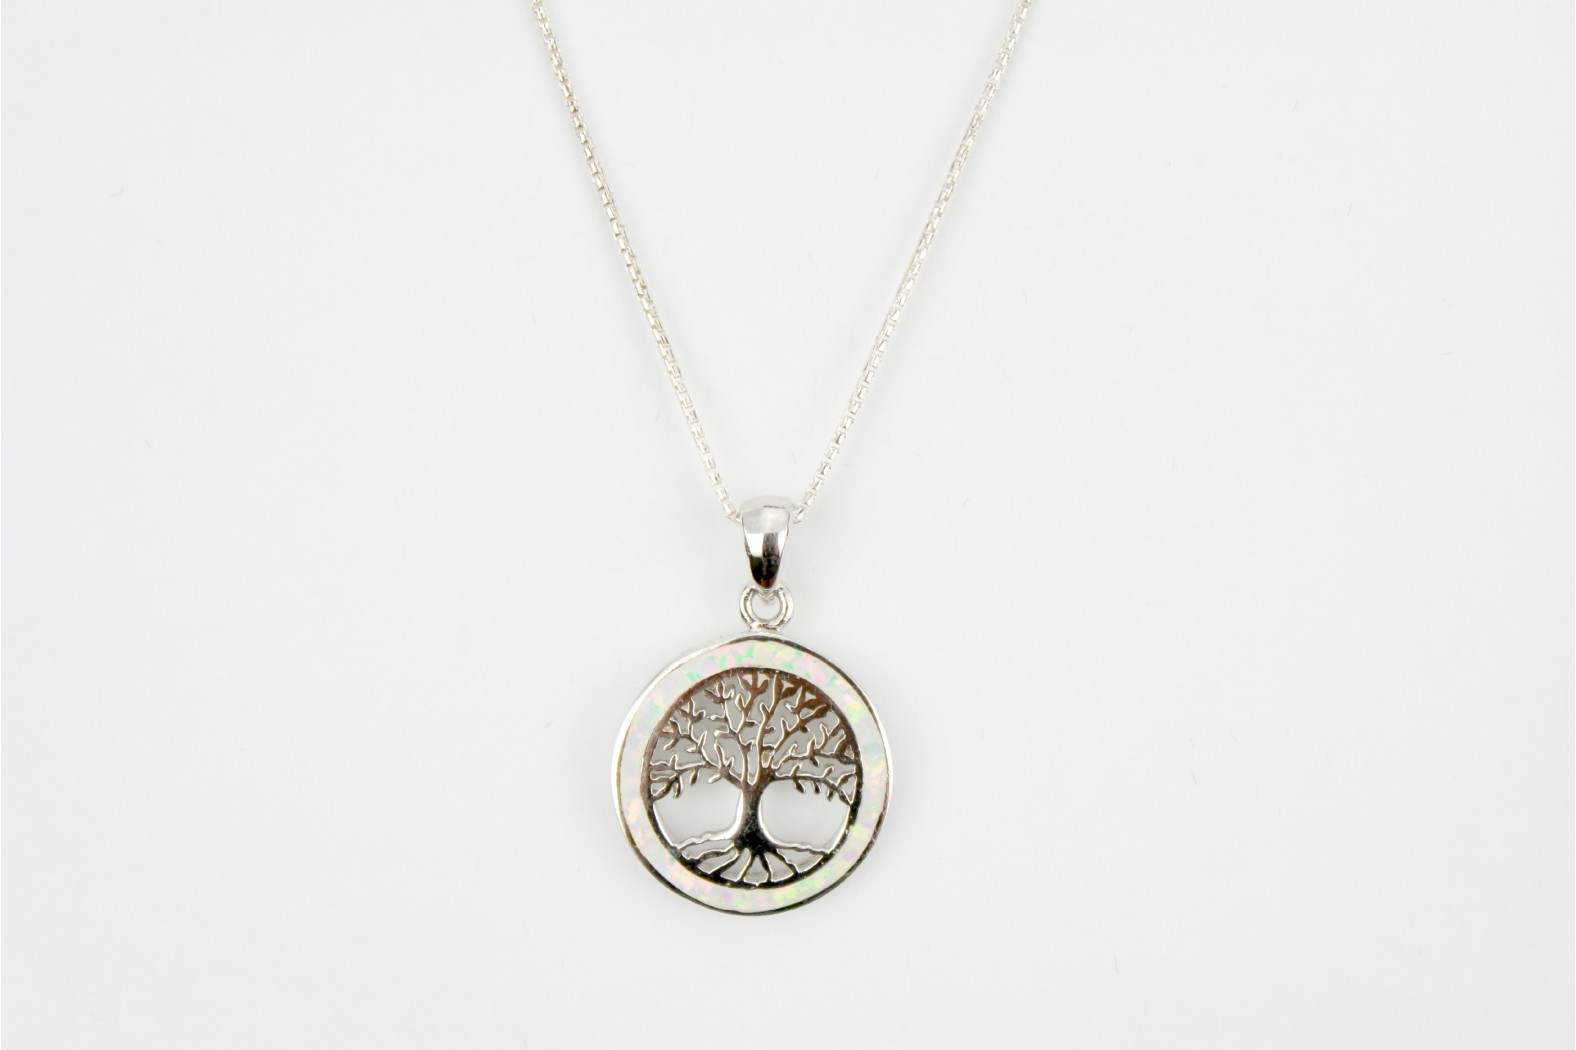 Silver Tree of Life embellished with White Opal Fire detailing on 20ins  50 cm curb chain. TEMPORARILY OUT OF STOCK